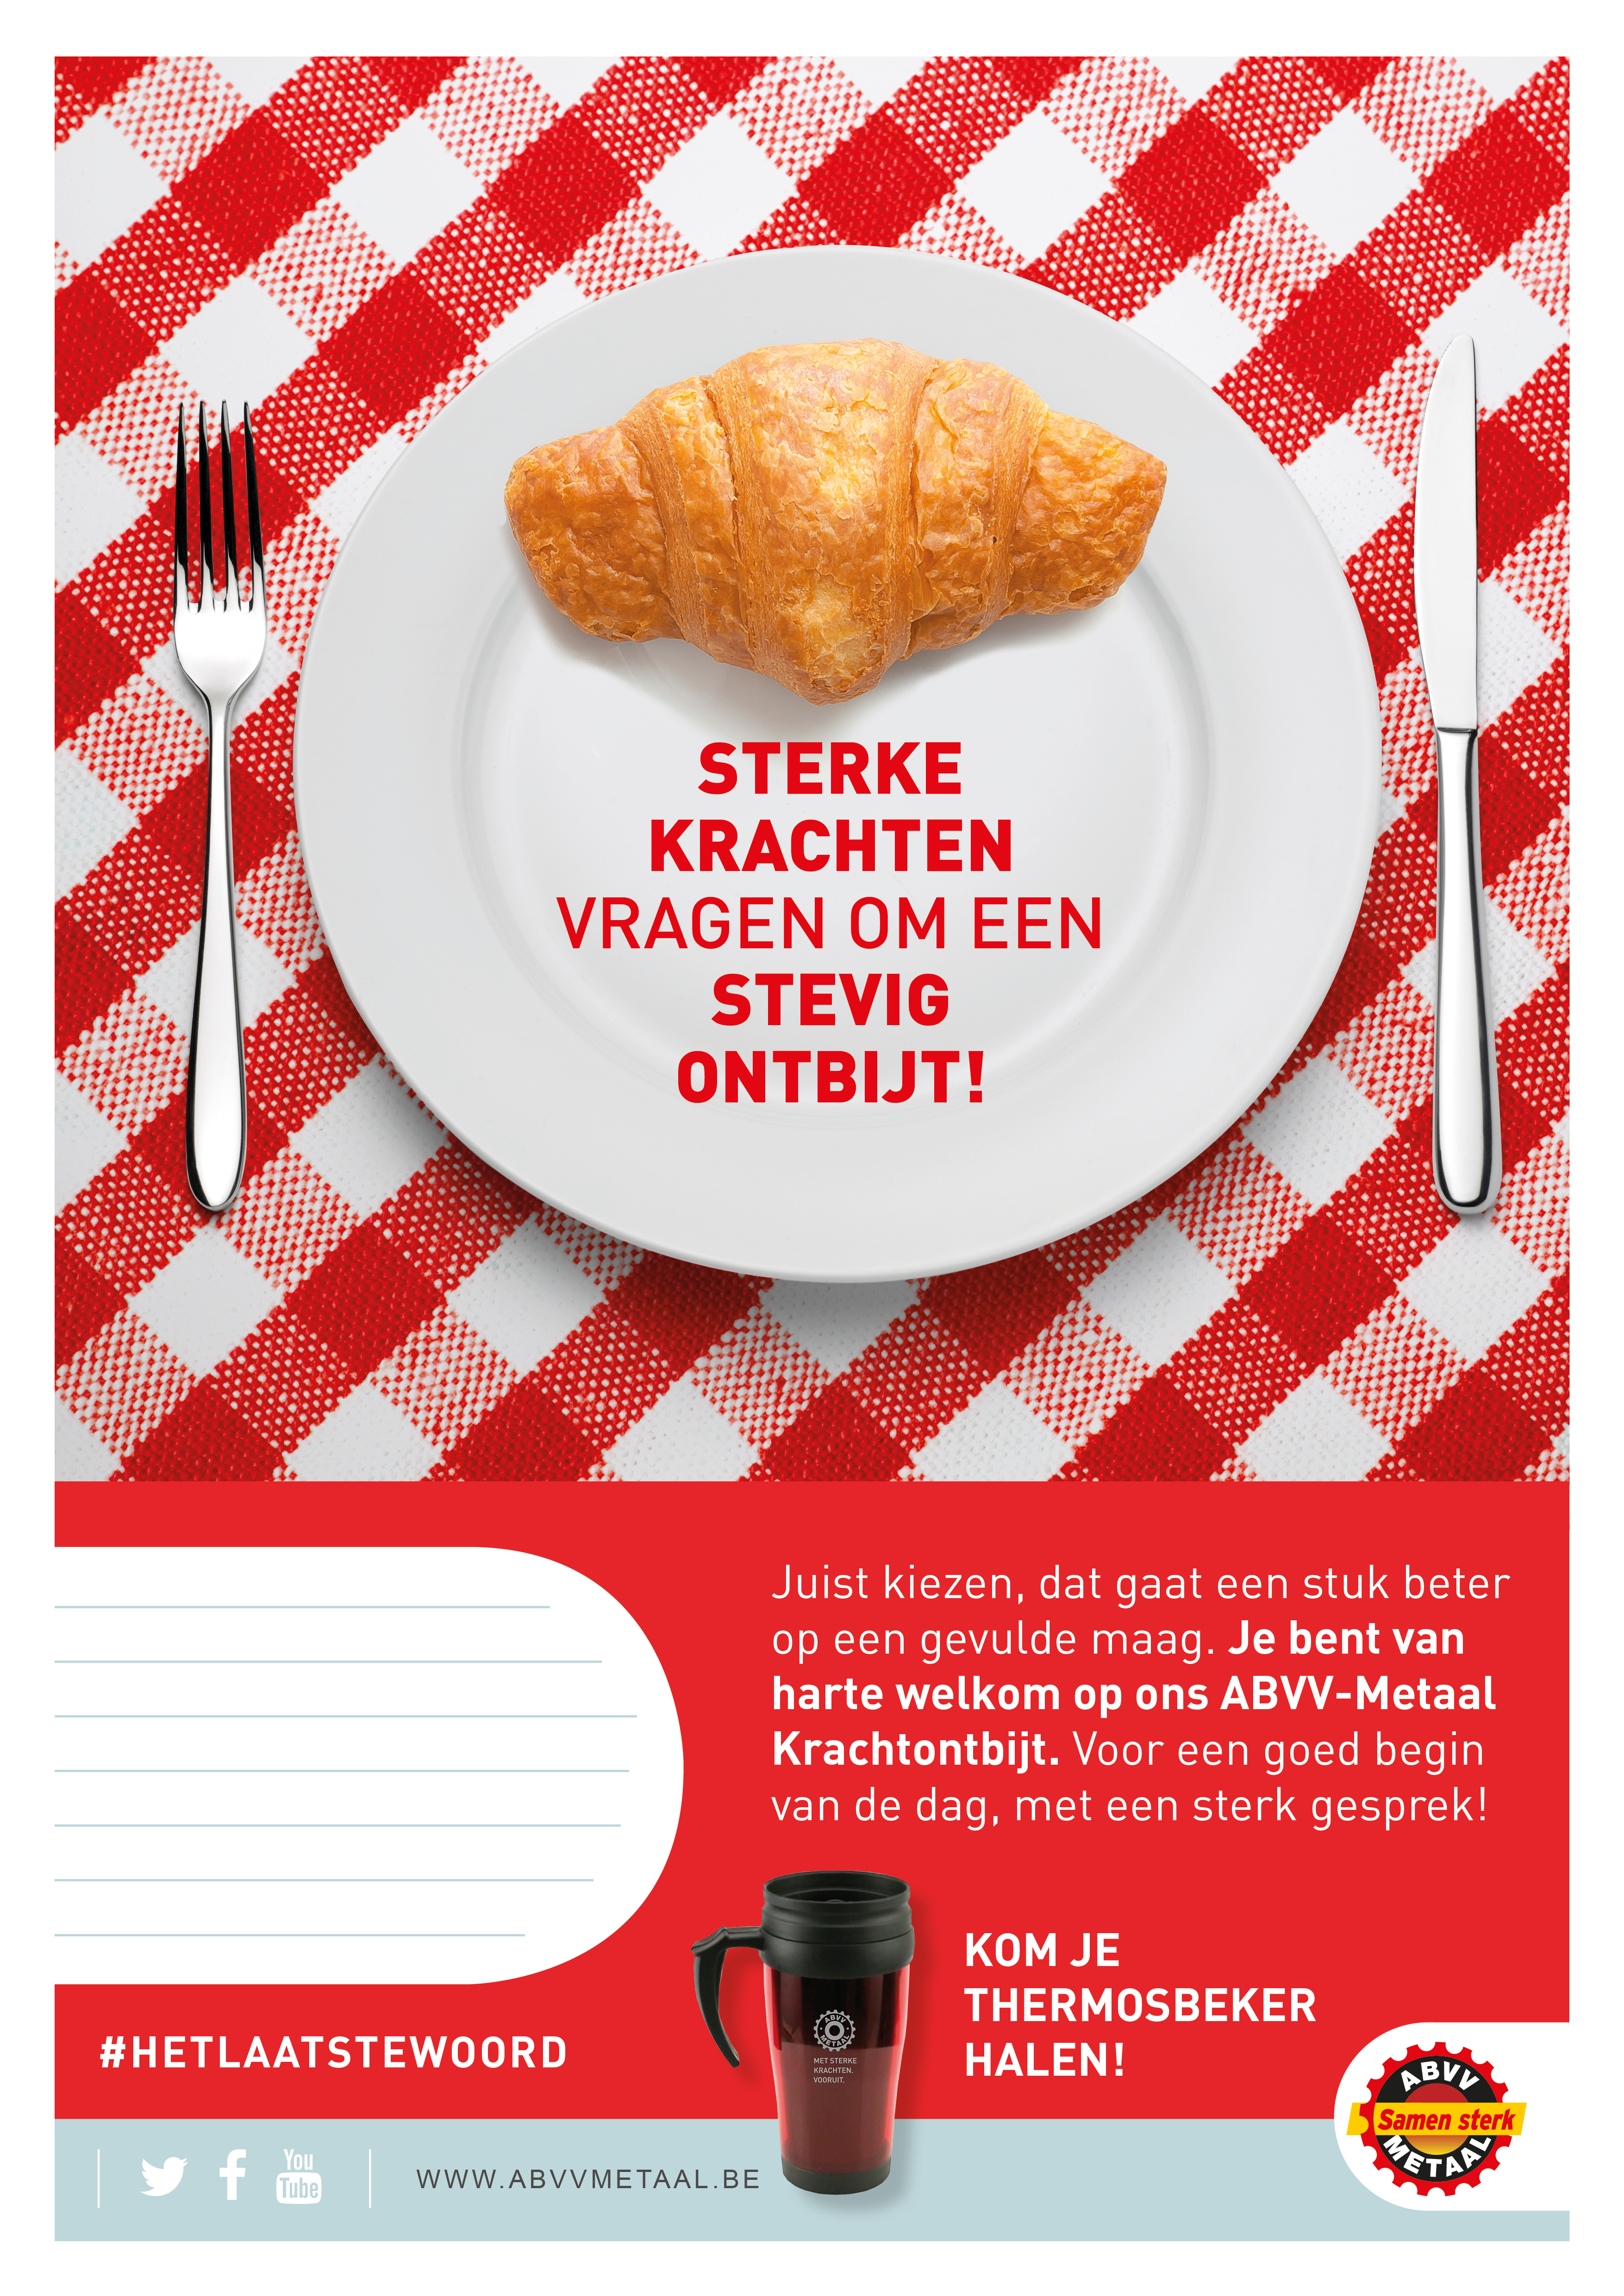 Q16 2391 ABVV Metaal SocVer affiche Ontbijt NL